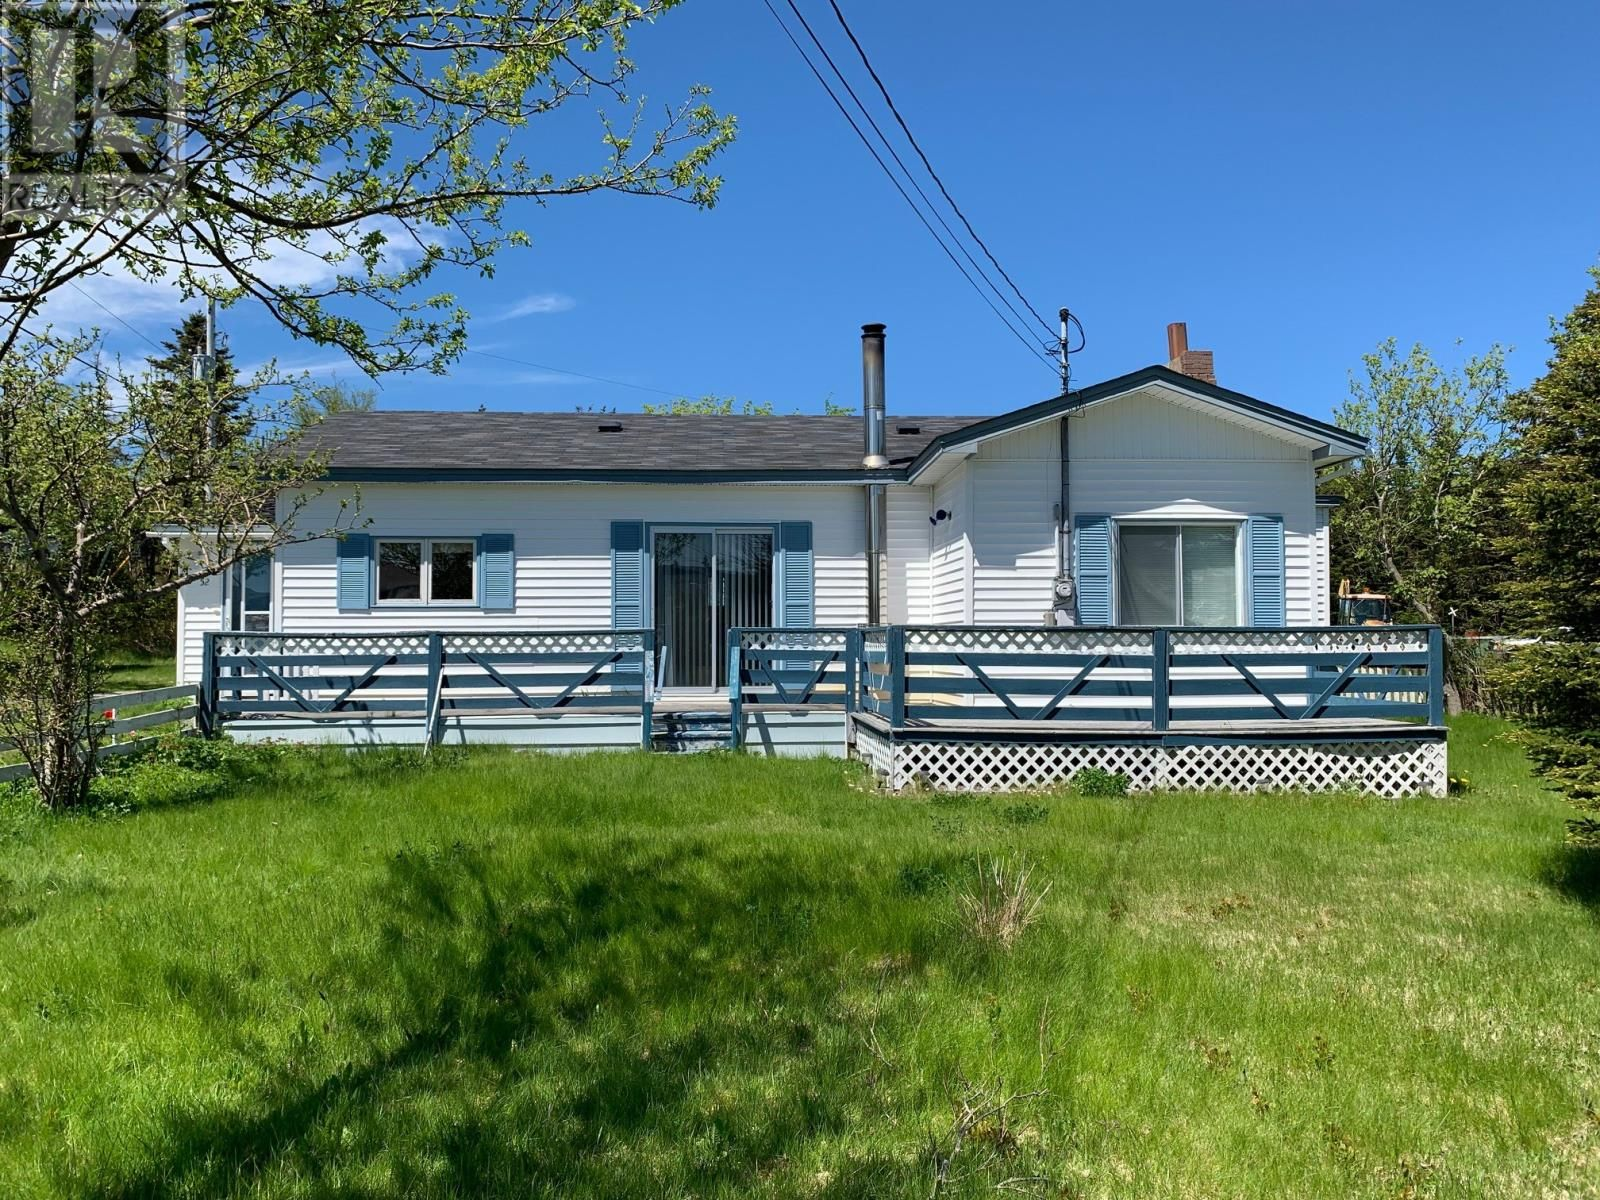 Main Photo: 52 Pitchers Path in St. John's: Vacant Land for sale : MLS®# 1233465